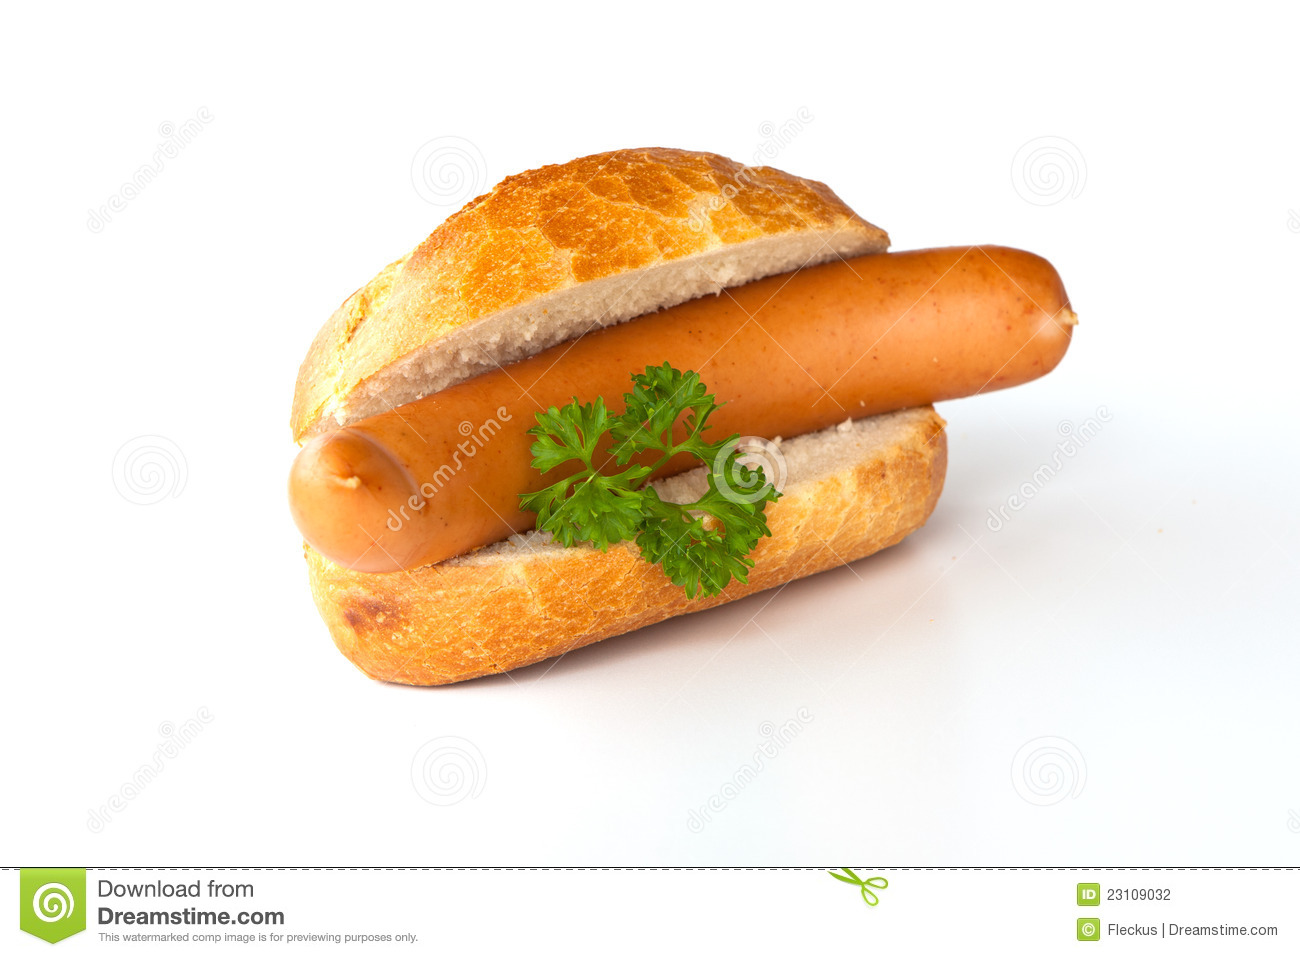 Hot Dog Wiener Frankfurter Images